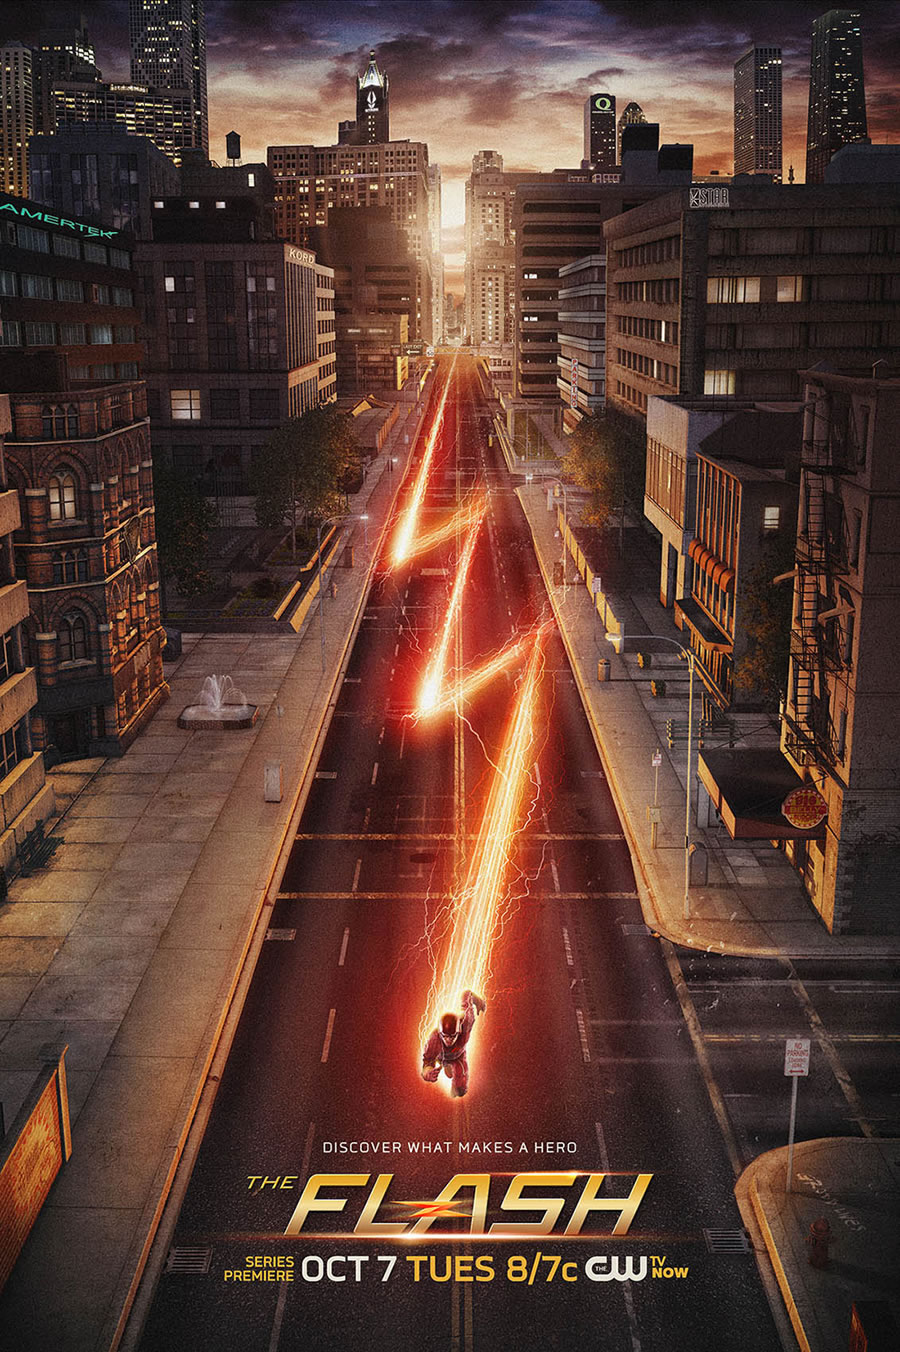 FLASH_Poster